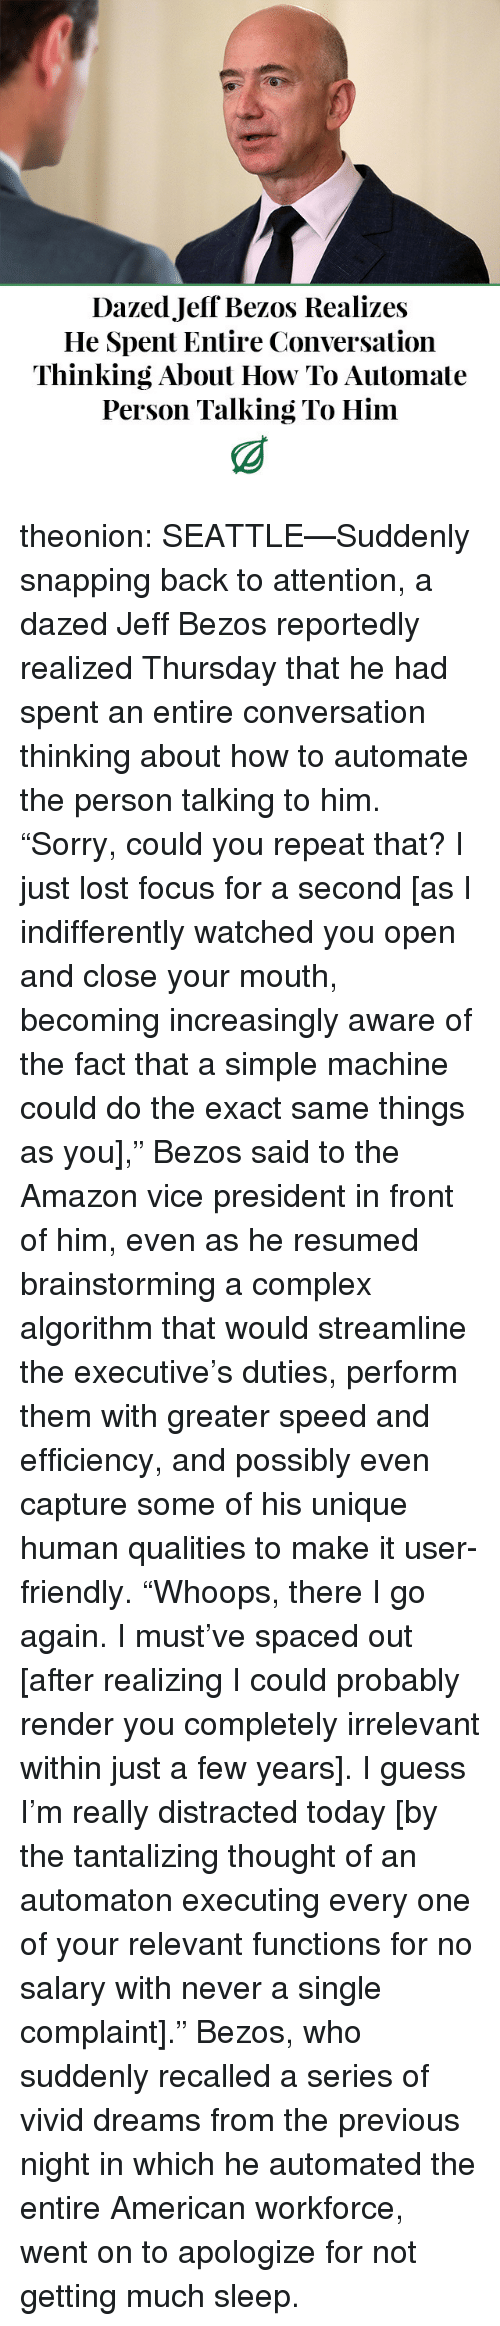 """Increasingly: Dazed Jeff Bezos Realizes  He Spent Entire Conversation  Thinking About How To Automate  Person Talking To Him theonion:  SEATTLE—Suddenly snapping back to attention, a dazed Jeff Bezos reportedly realized Thursday that he had spent an entire conversation thinking about how to automate the person talking to him. """"Sorry, could you repeat that? I just lost focus for a second [as I indifferently watched you open and close your mouth, becoming increasingly aware of the fact that a simple machine could do the exact same things as you],"""" Bezos said to the Amazon vice president in front of him, even as he resumed brainstorming a complex algorithm that would streamline the executive's duties, perform them with greater speed and efficiency, and possibly even capture some of his unique human qualities to make it user-friendly. """"Whoops, there I go again. I must've spaced out [after realizing I could probably render you completely irrelevant within just a few years]. I guess I'm really distracted today [by the tantalizing thought of an automaton executing every one of your relevant functions for no salary with never a single complaint]."""" Bezos, who suddenly recalled a series of vivid dreams from the previous night in which he automated the entire American workforce, went on to apologize for not getting much sleep."""